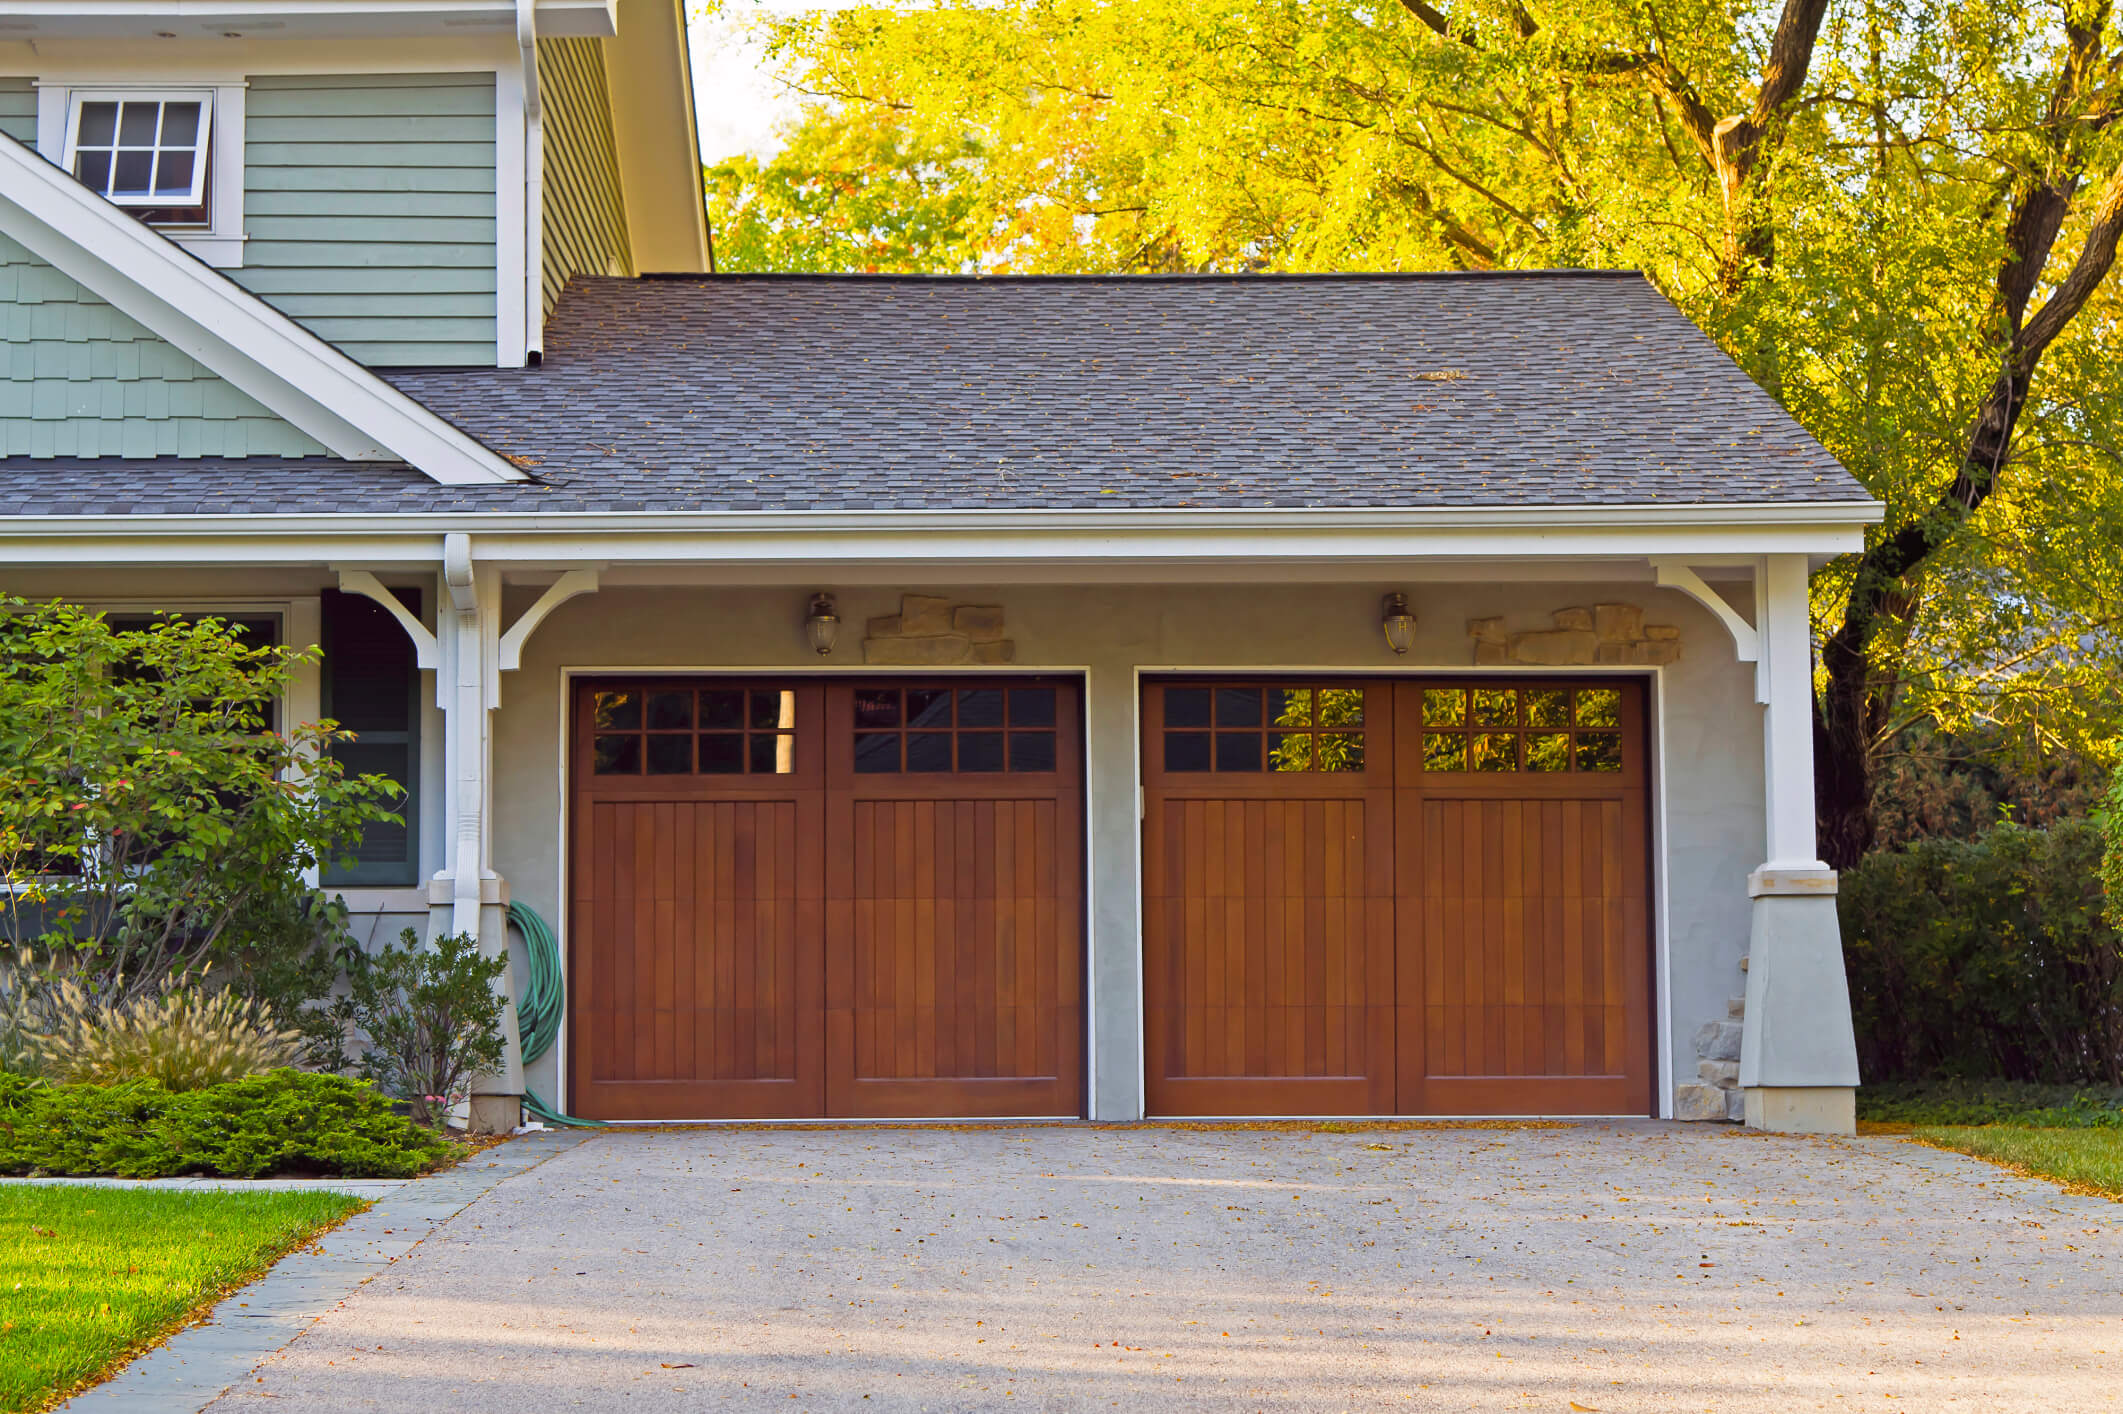 Want to Add Value to Your Home? Upgrade the Garage Doors!